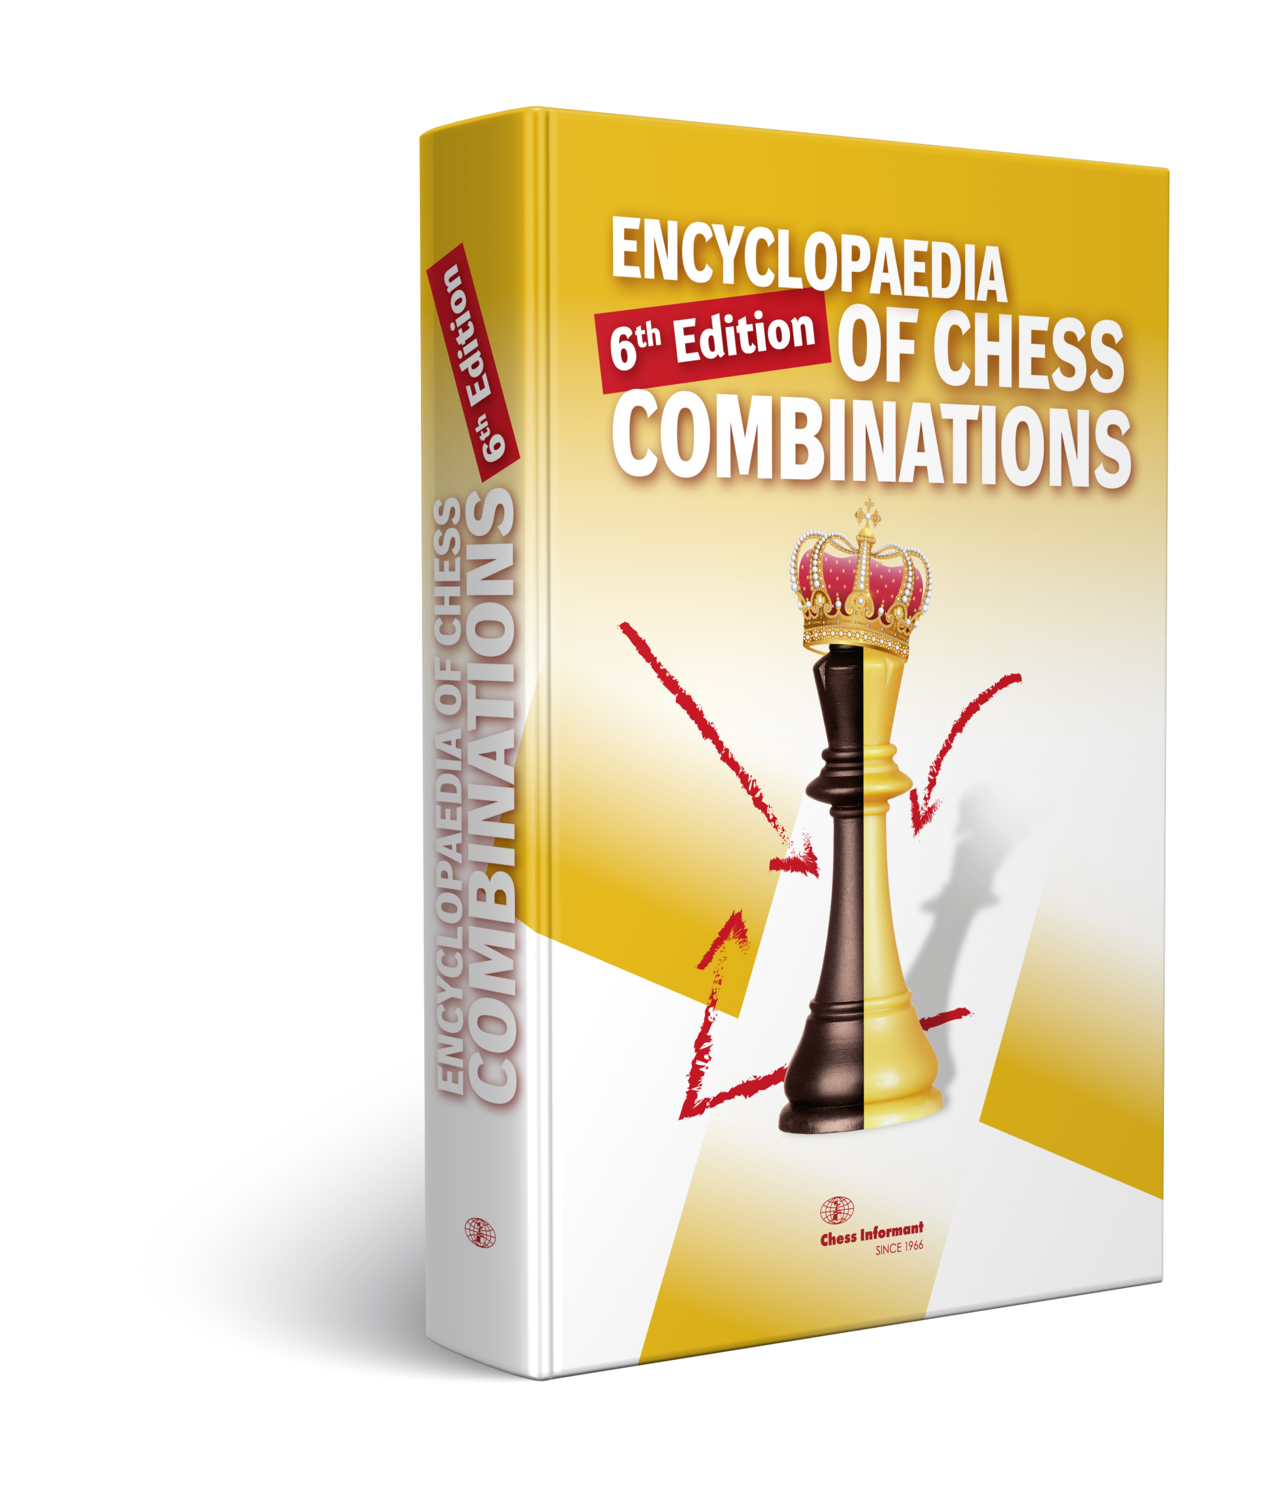 Encyclopaedia of Chess Combinations - 6th Edition ***DAMAGED***